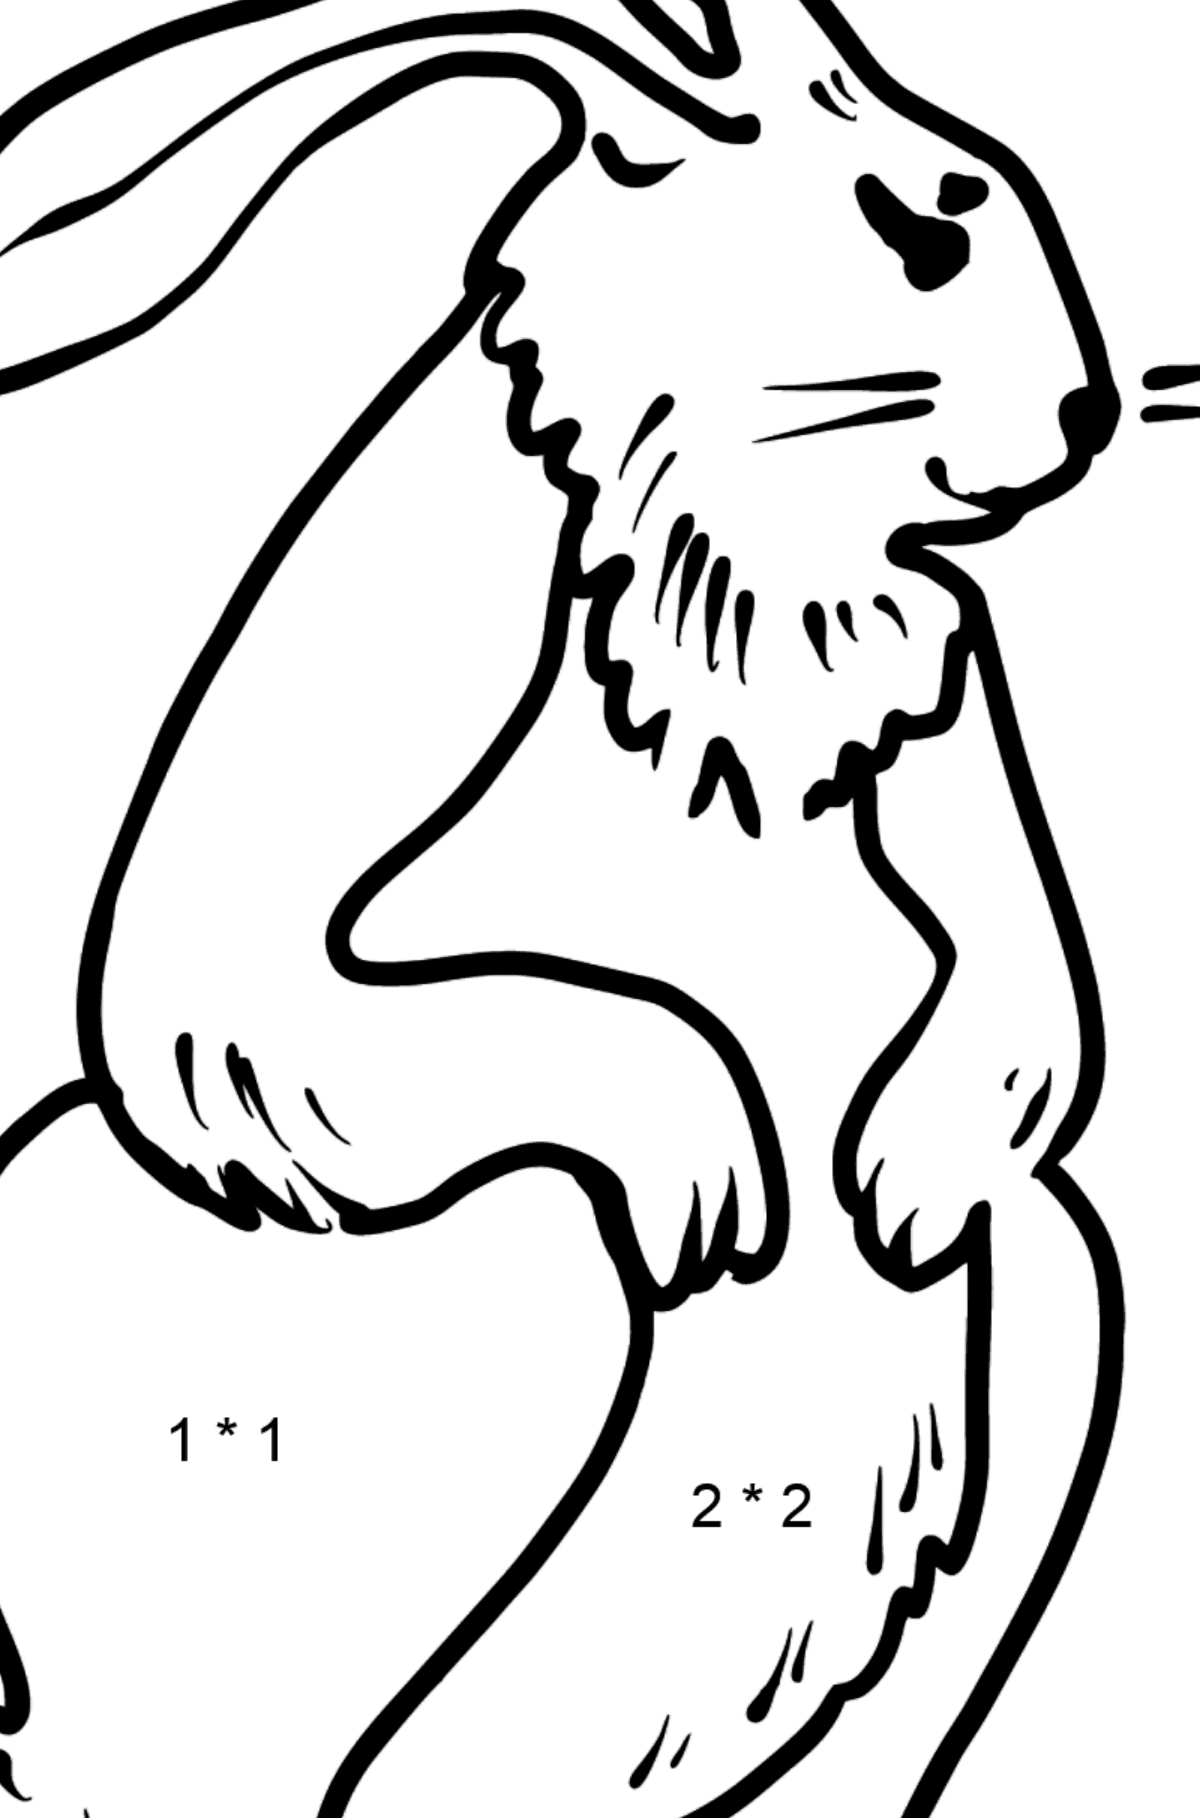 Rabbit coloring page - Math Coloring - Multiplication for Kids